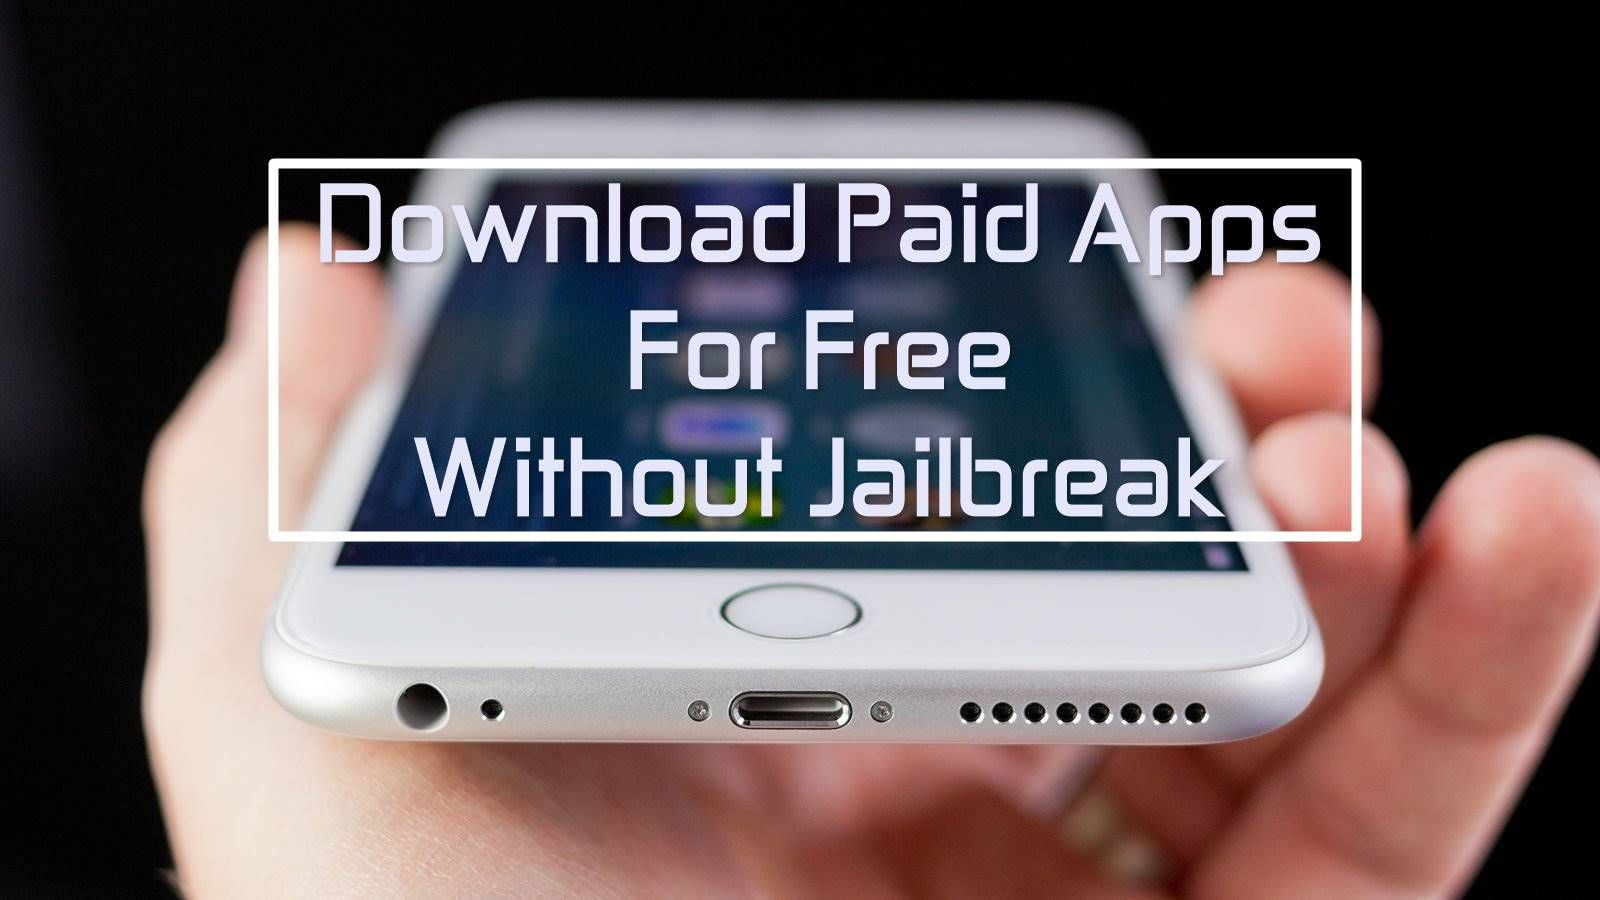 How To Download Paid Iphone Apps For Free Without Jailbreak